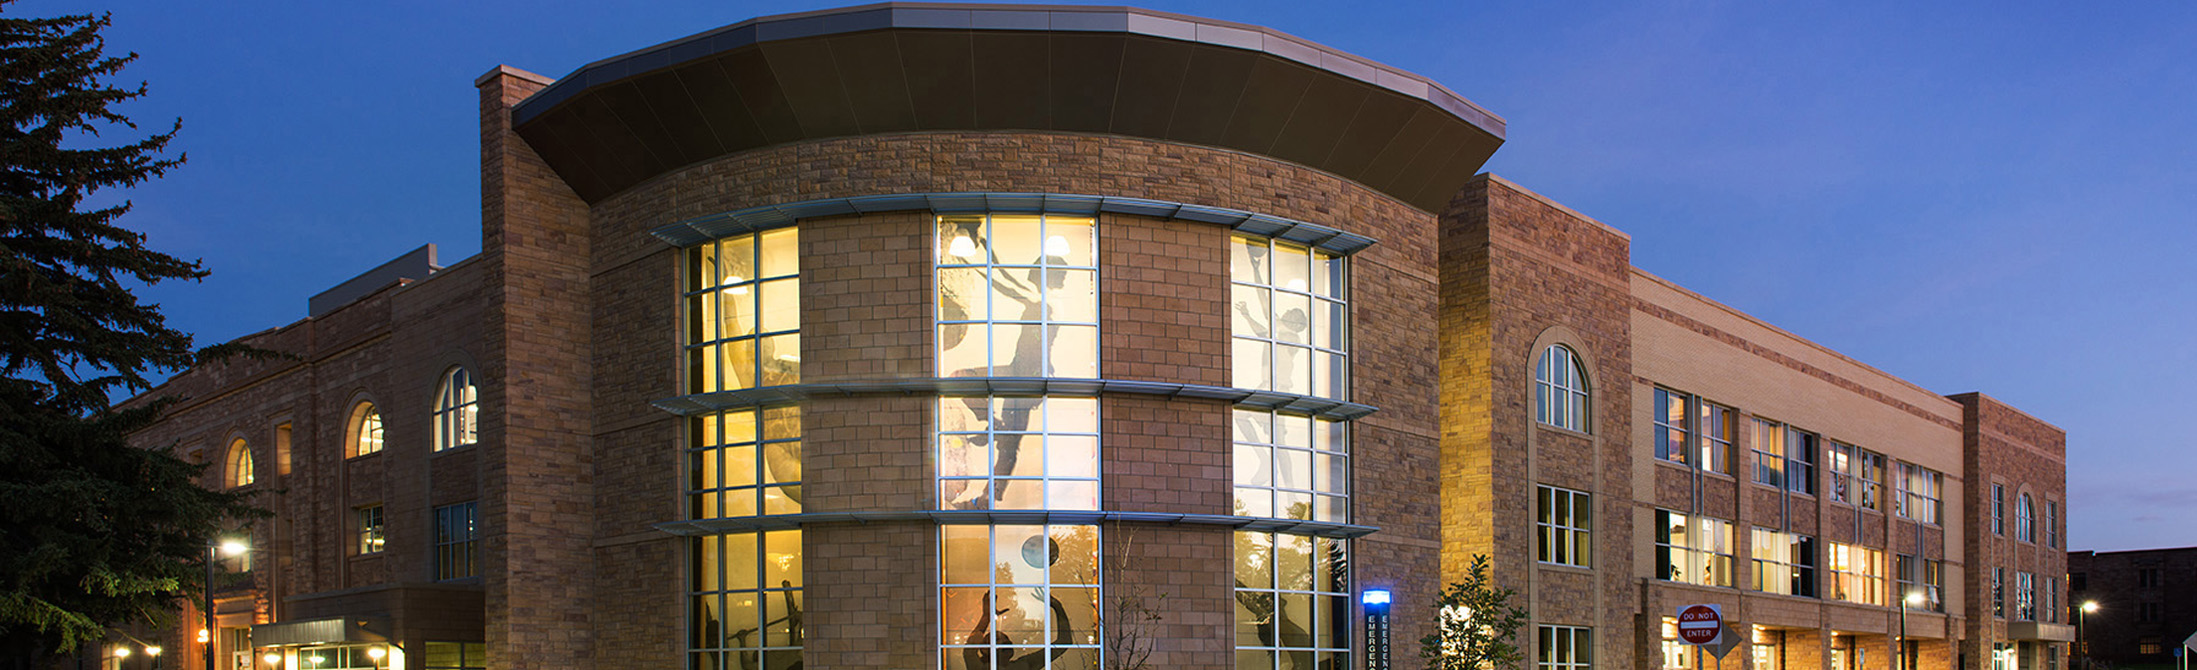 Evening exterior view of the half acre recreation and wellness center